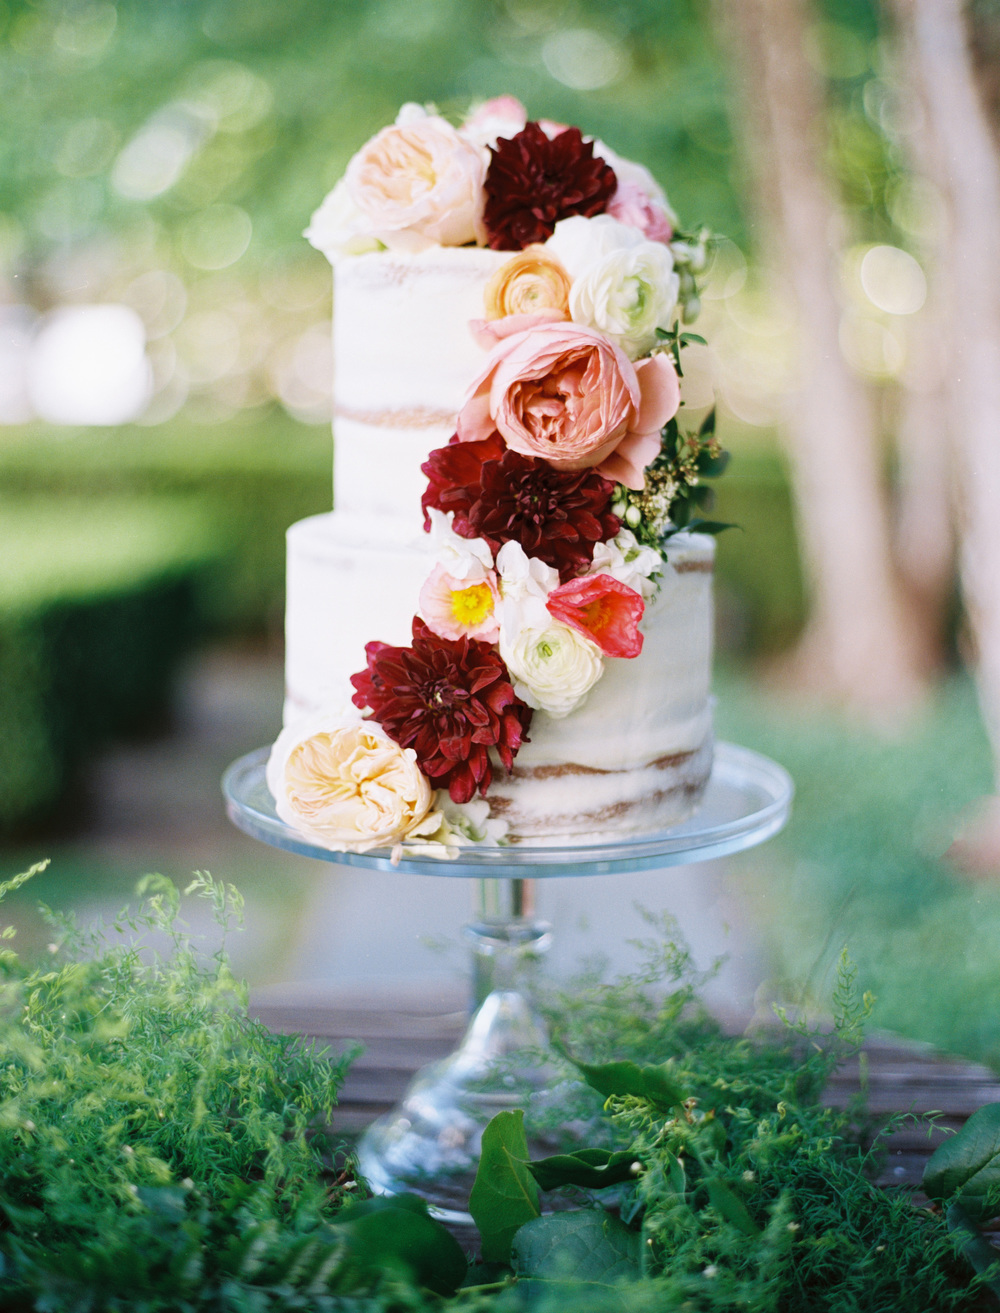 sugar bee sweets bakery dallas fort worth wedding cake bakery custom wedding cakes. Black Bedroom Furniture Sets. Home Design Ideas